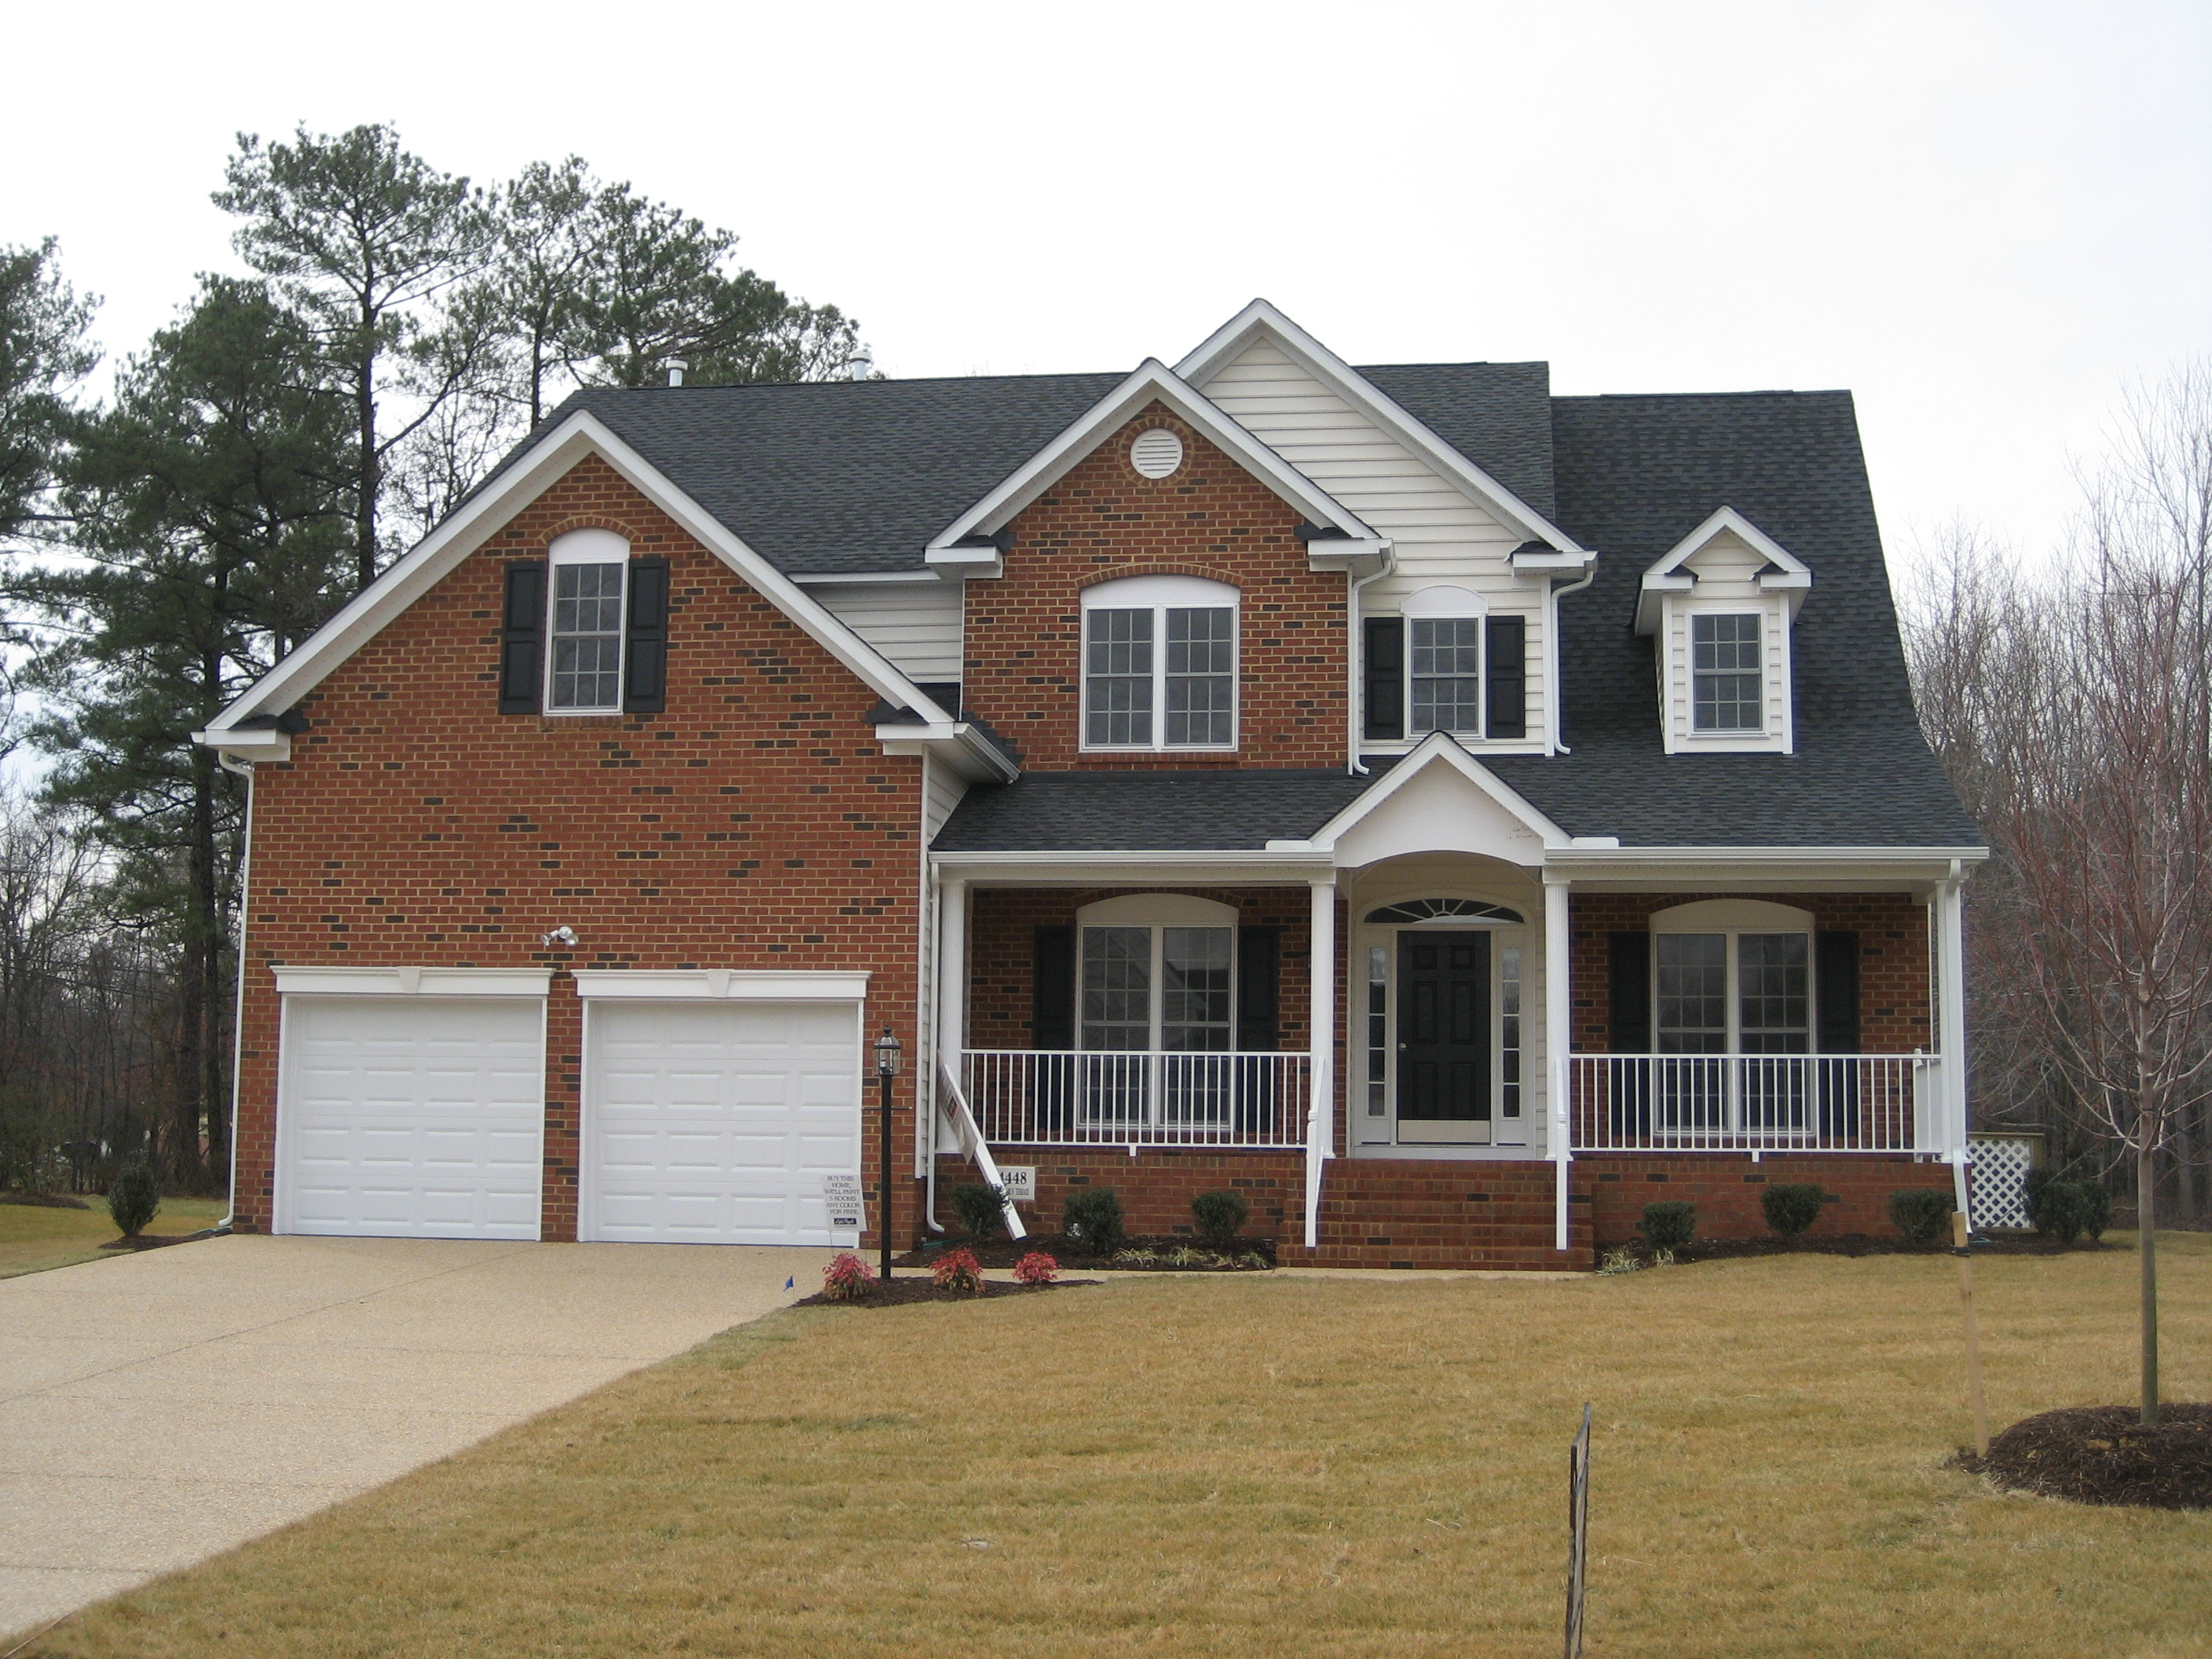 Single Family for Sale at Brickshire-Wadsworth 11000 Kentland Trail Providence Forge, Virginia 23140 United States